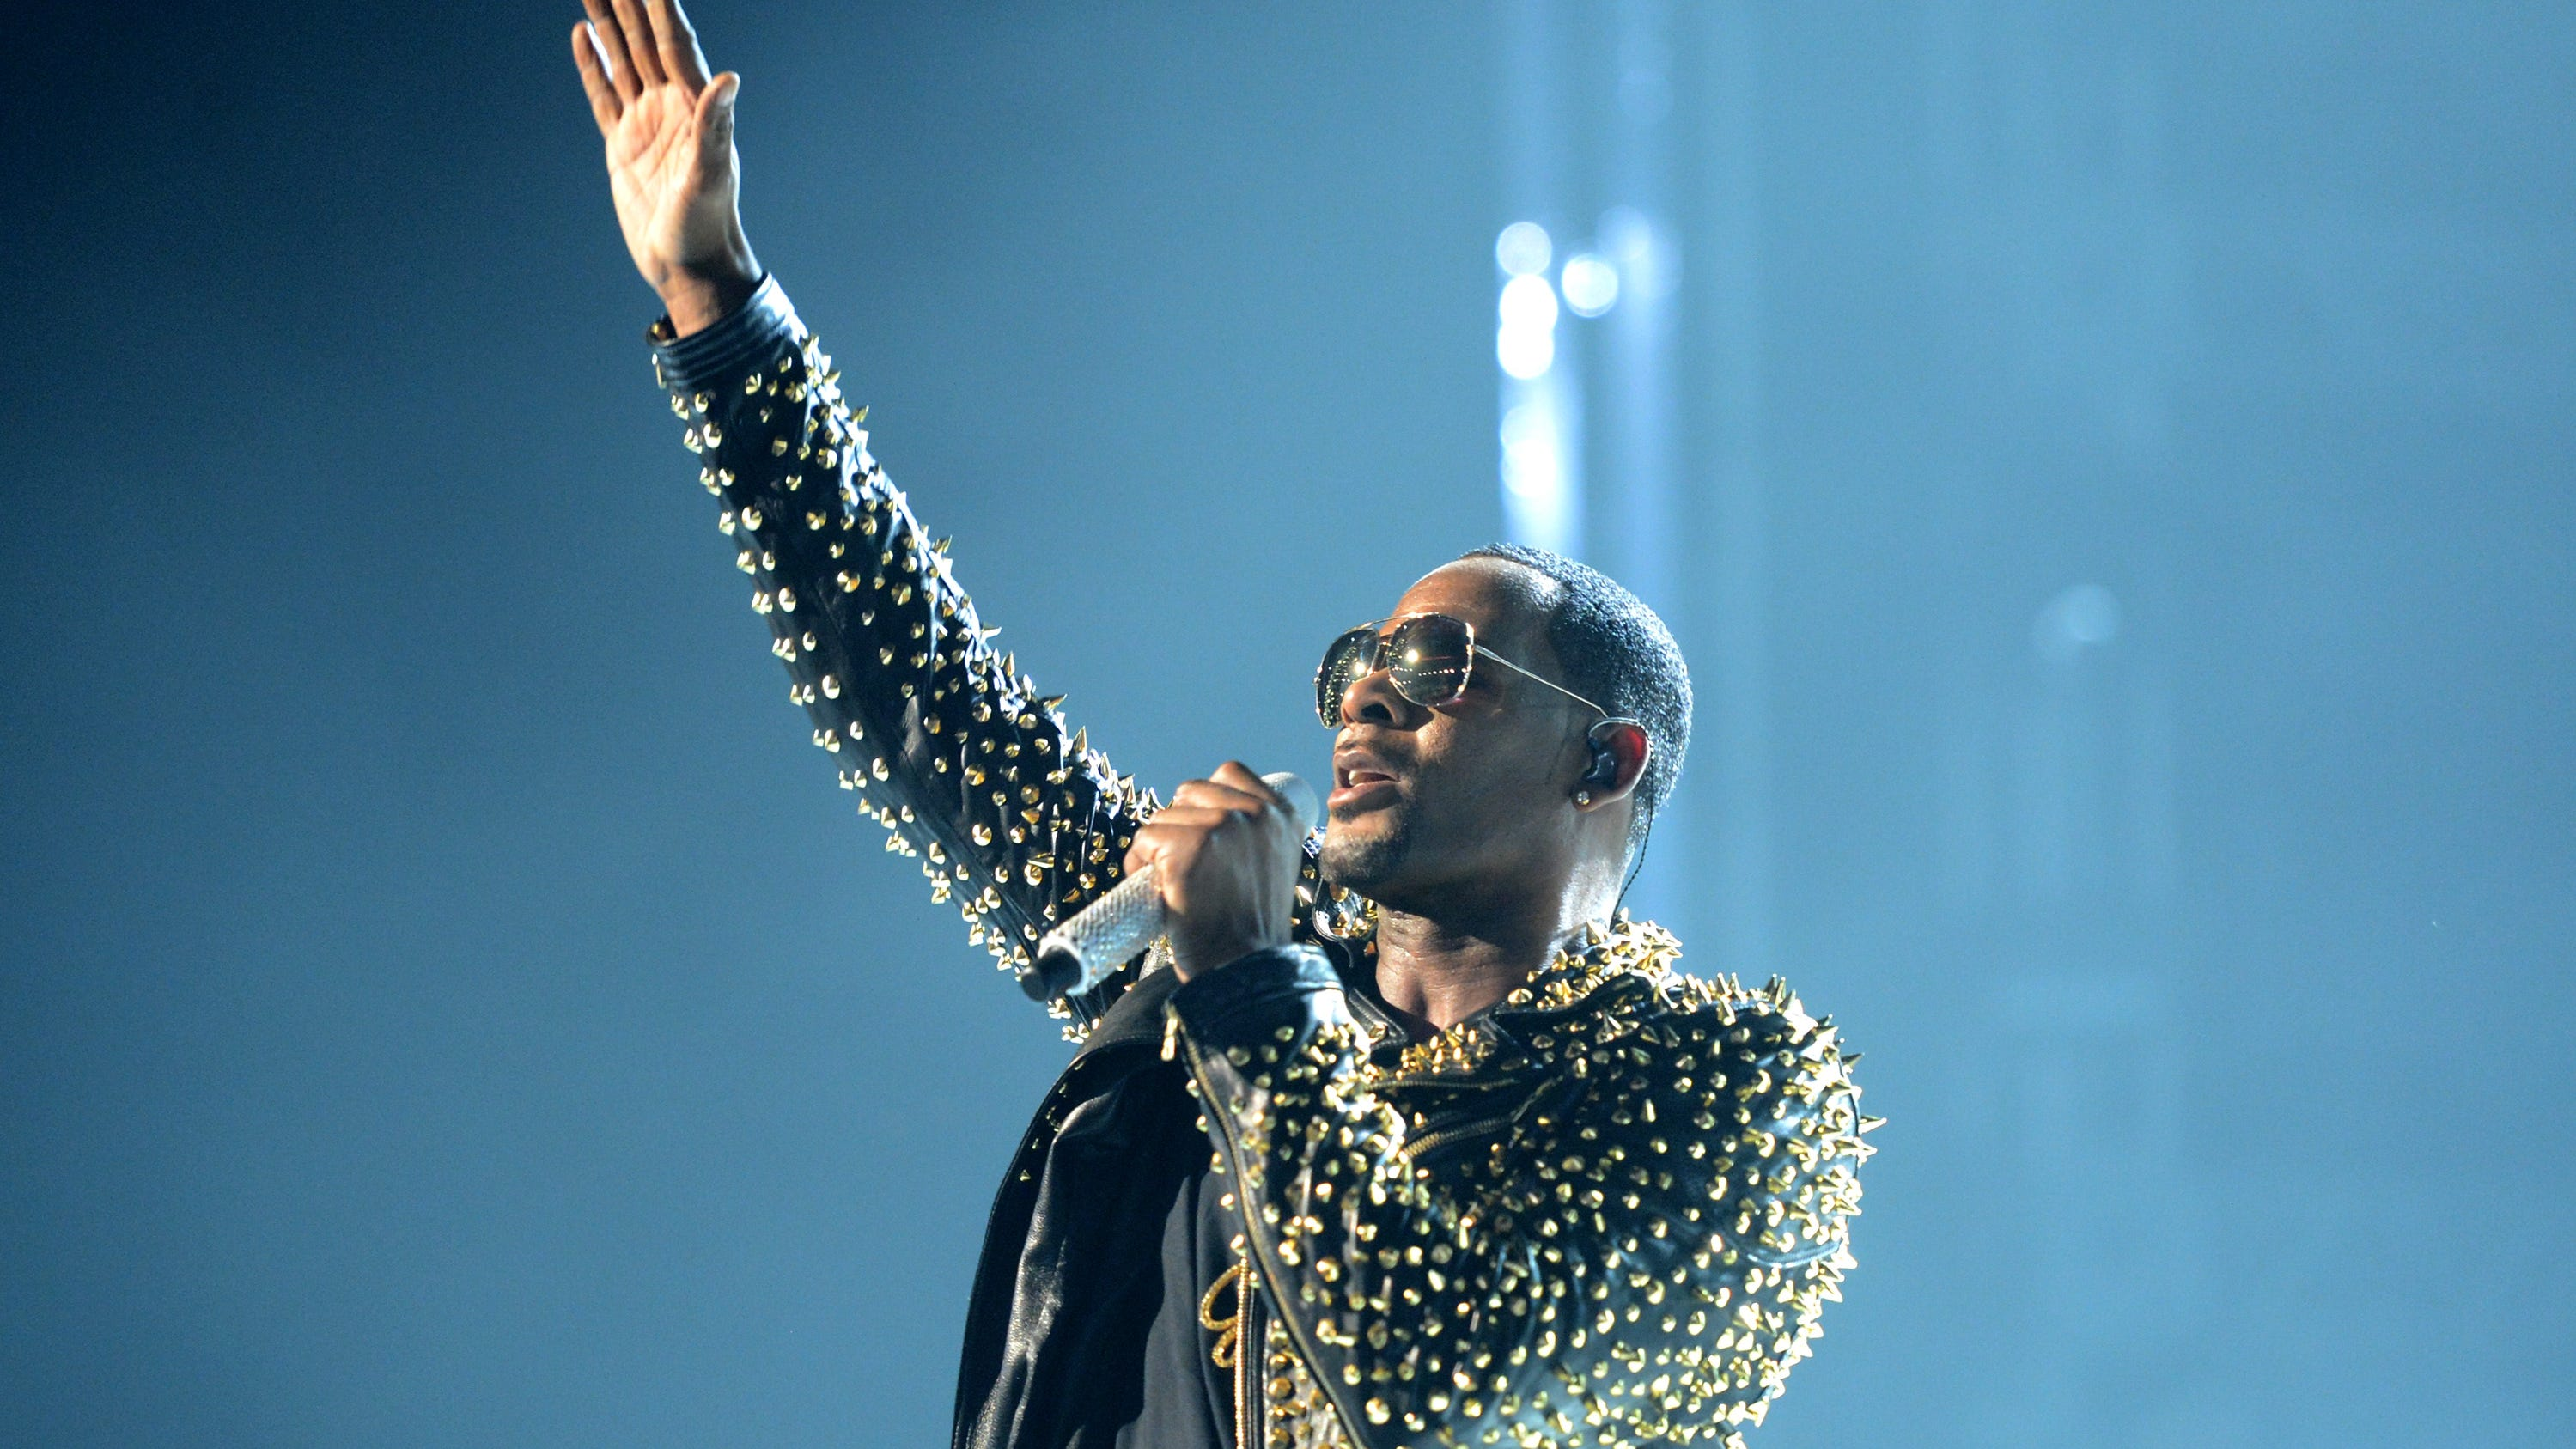 R. Kelly has been indicted, charged with 10 counts of aggravated criminal sexual abuse